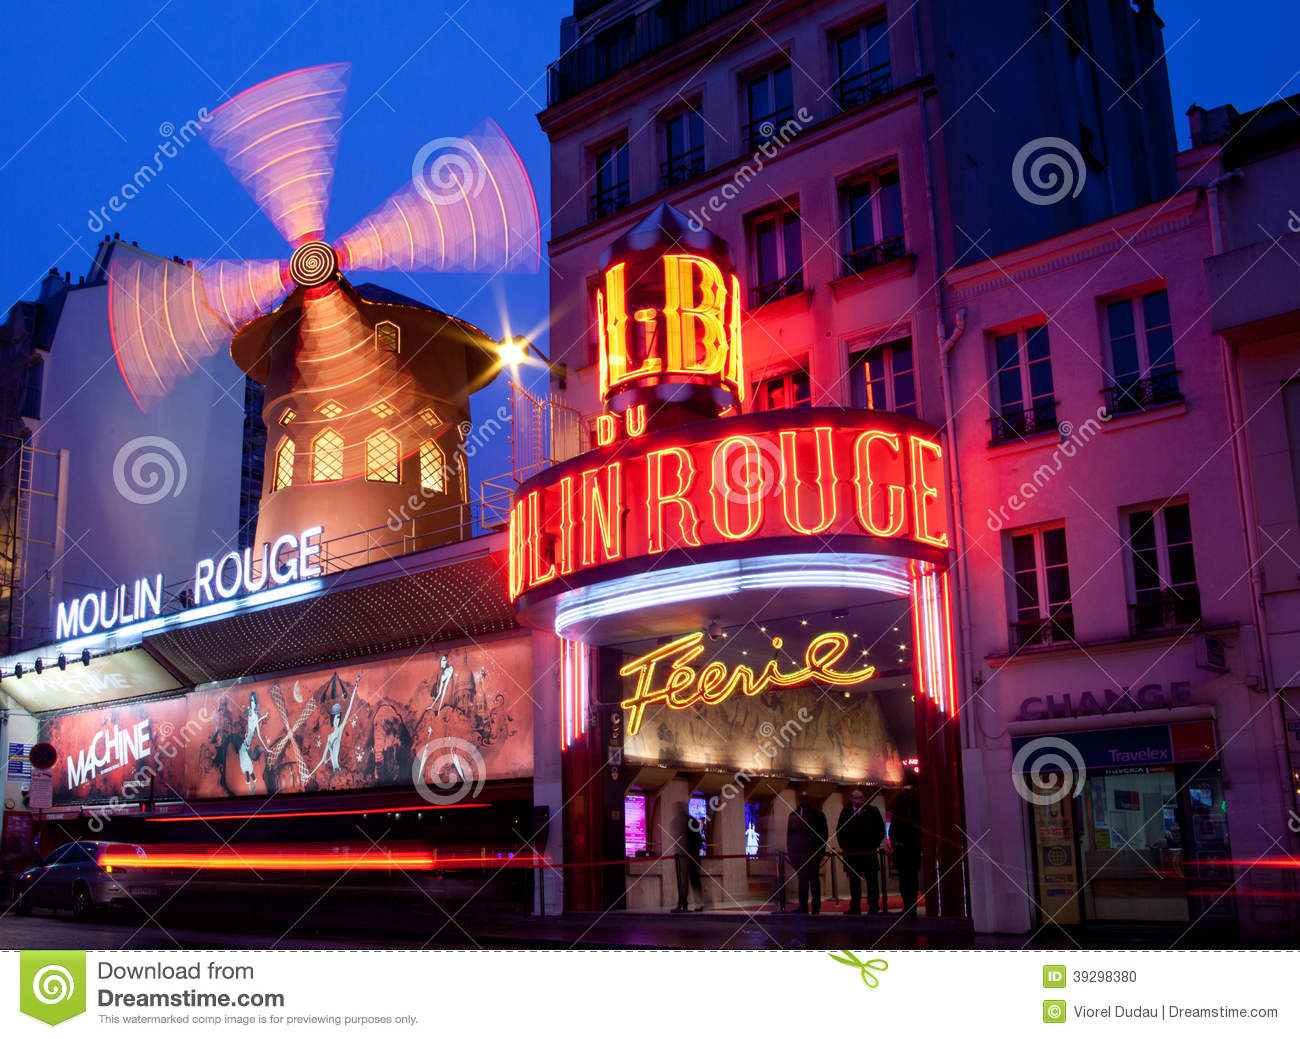 Parijs, Moulin-Rouge